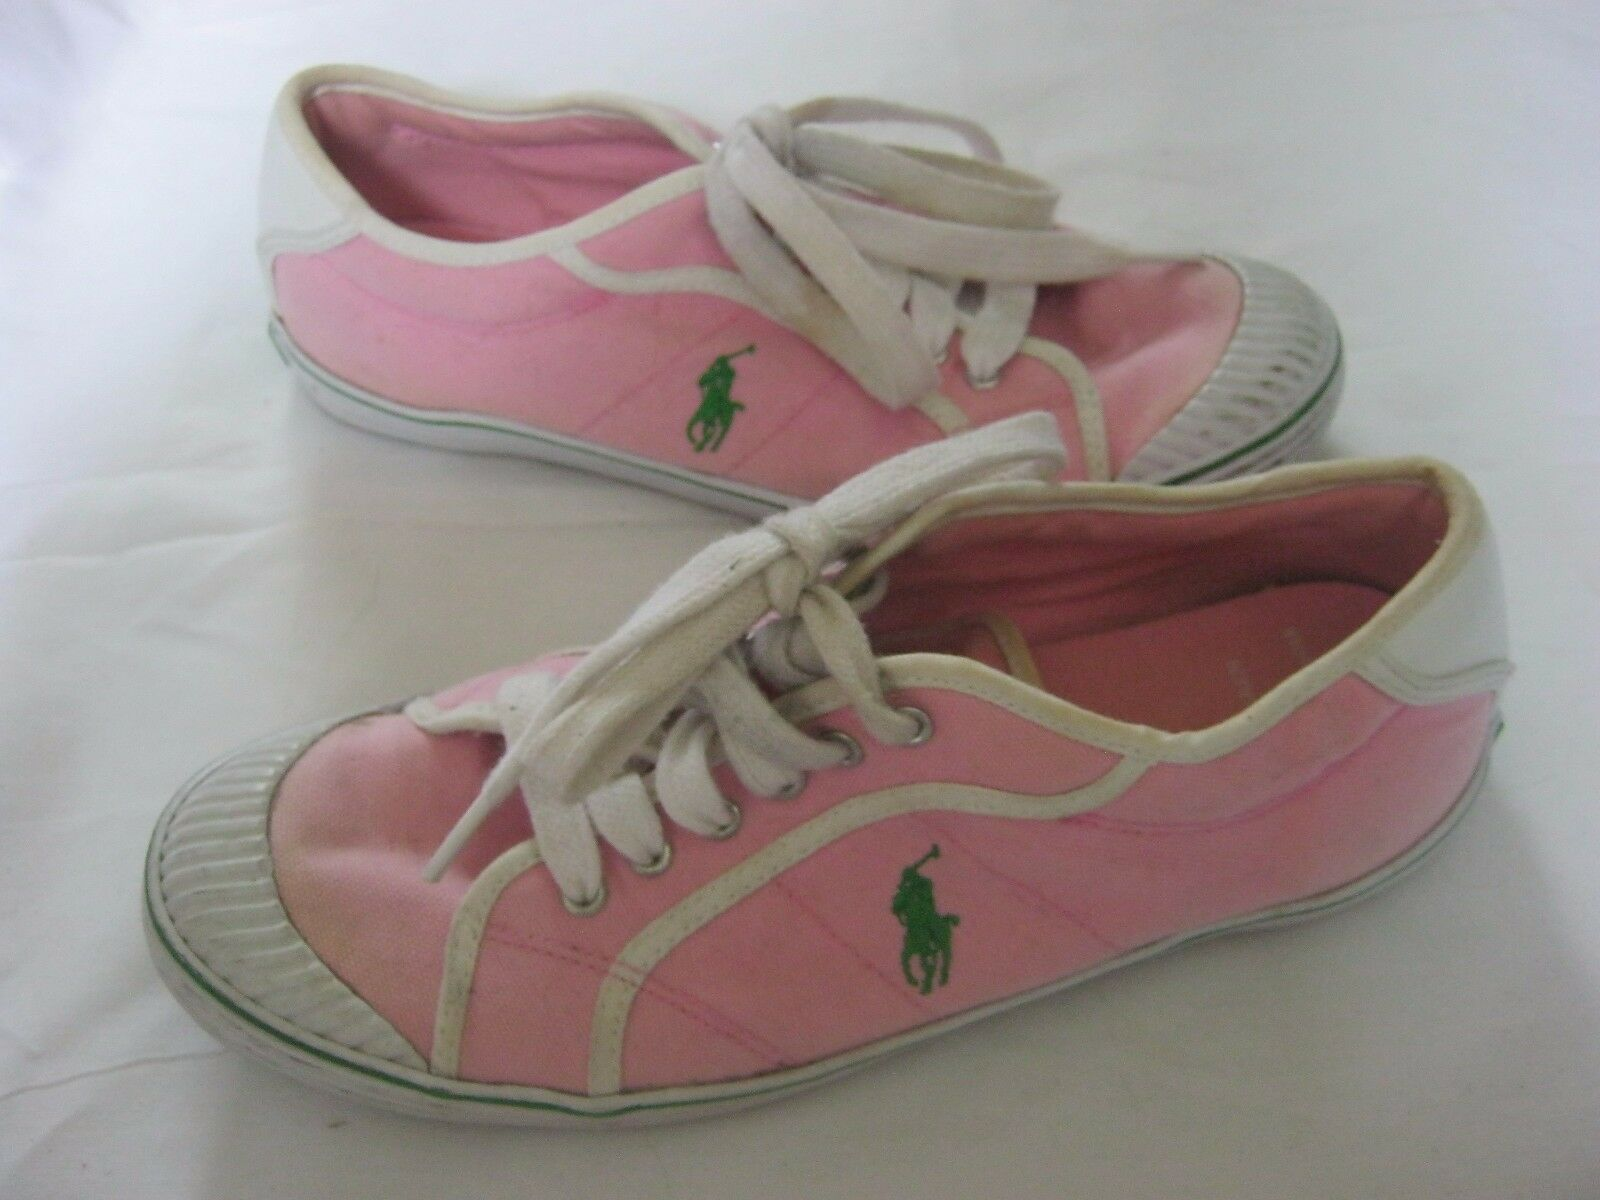 Polo Ralph Lauren Canvas Sneakers Athletic shoes Womens sz 8.5B Pink Green Pony